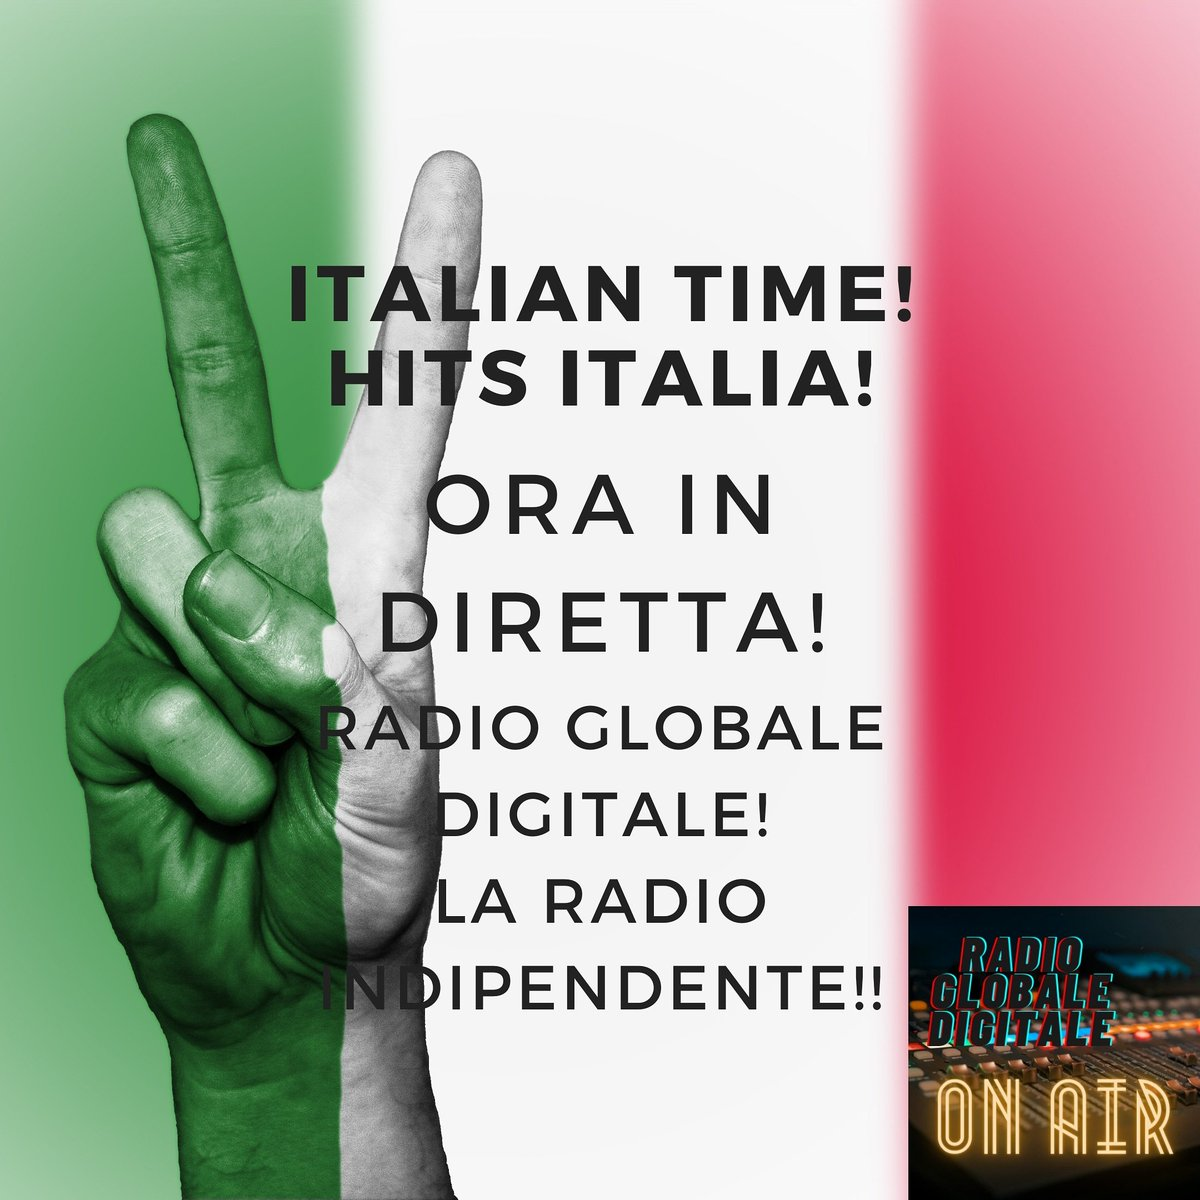 Now on air!!! Listen RADIO GLOBALE DIGITALE!!   #artiste #beat #beats #best #favoritesong #genre #goodmusic #hiphop  #listentothis #love #lovethissong #melody #music #myjam #newsong #party #partymusic #pop  #remix #repeat #rnb #song #songs #TagsForLikes